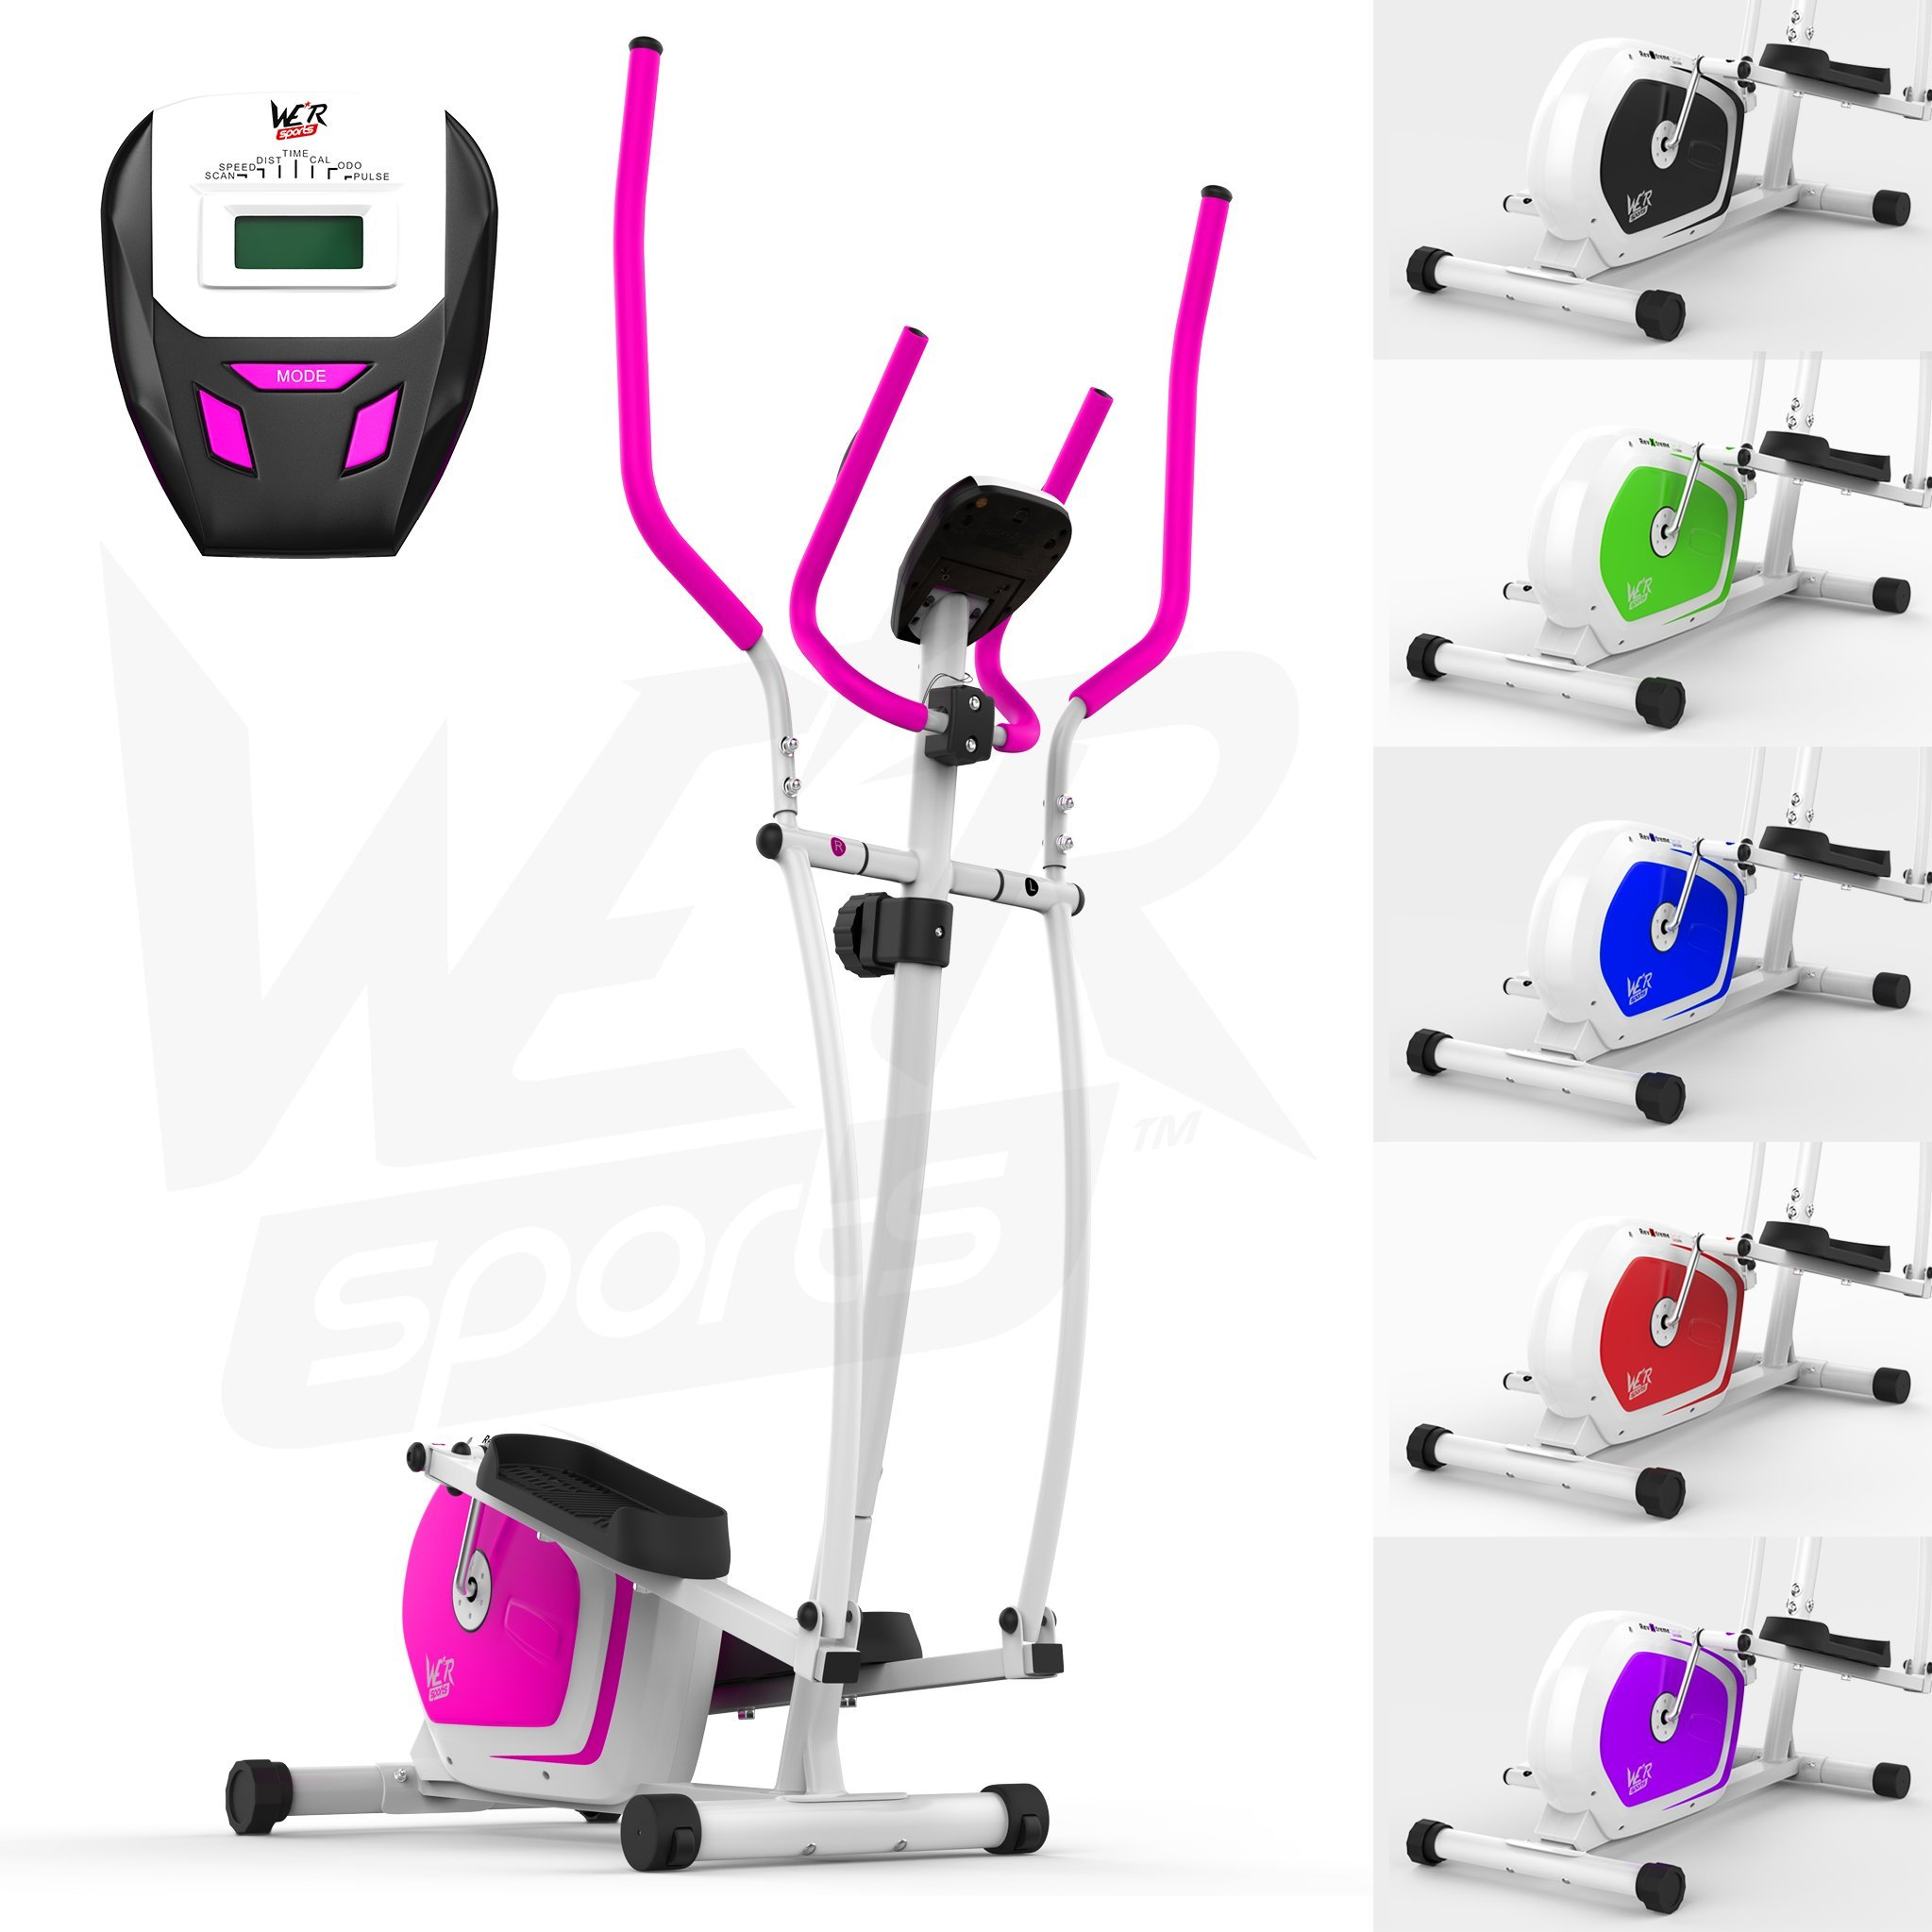 We R Sports Elliptique Traverser Entraîneur & Exercice Vélo 2-en-1 Maison Cardio Faire Du Sport product image